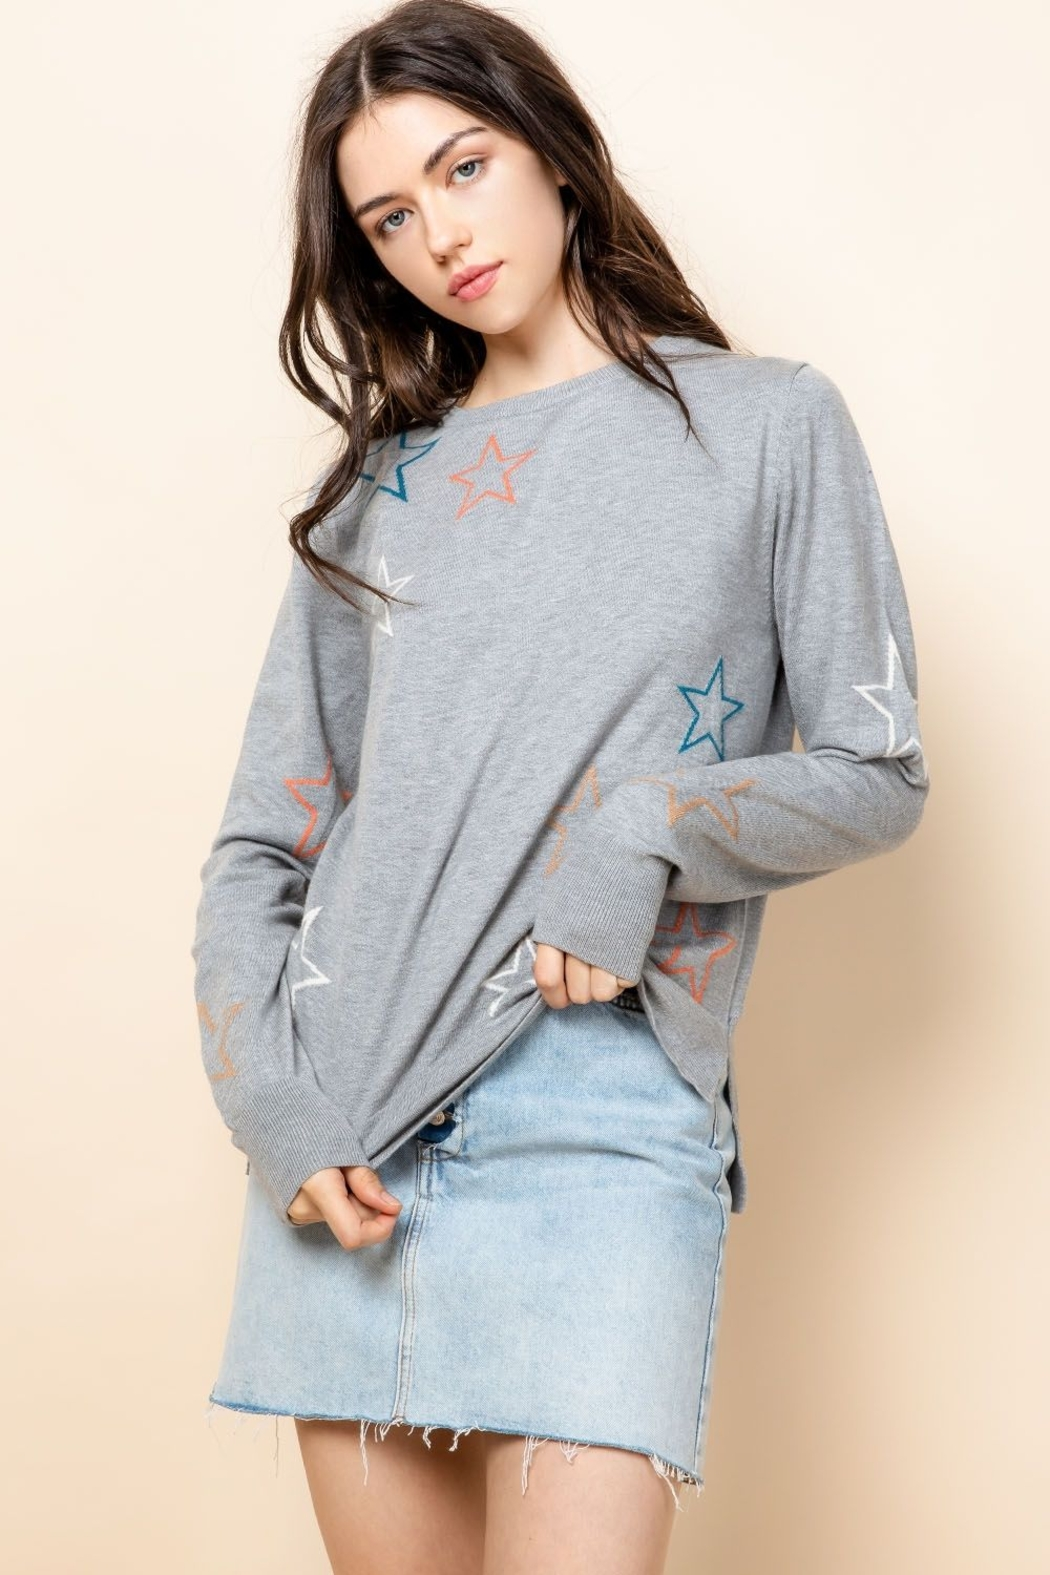 Thml SWEATER WITH STARS - Main Image